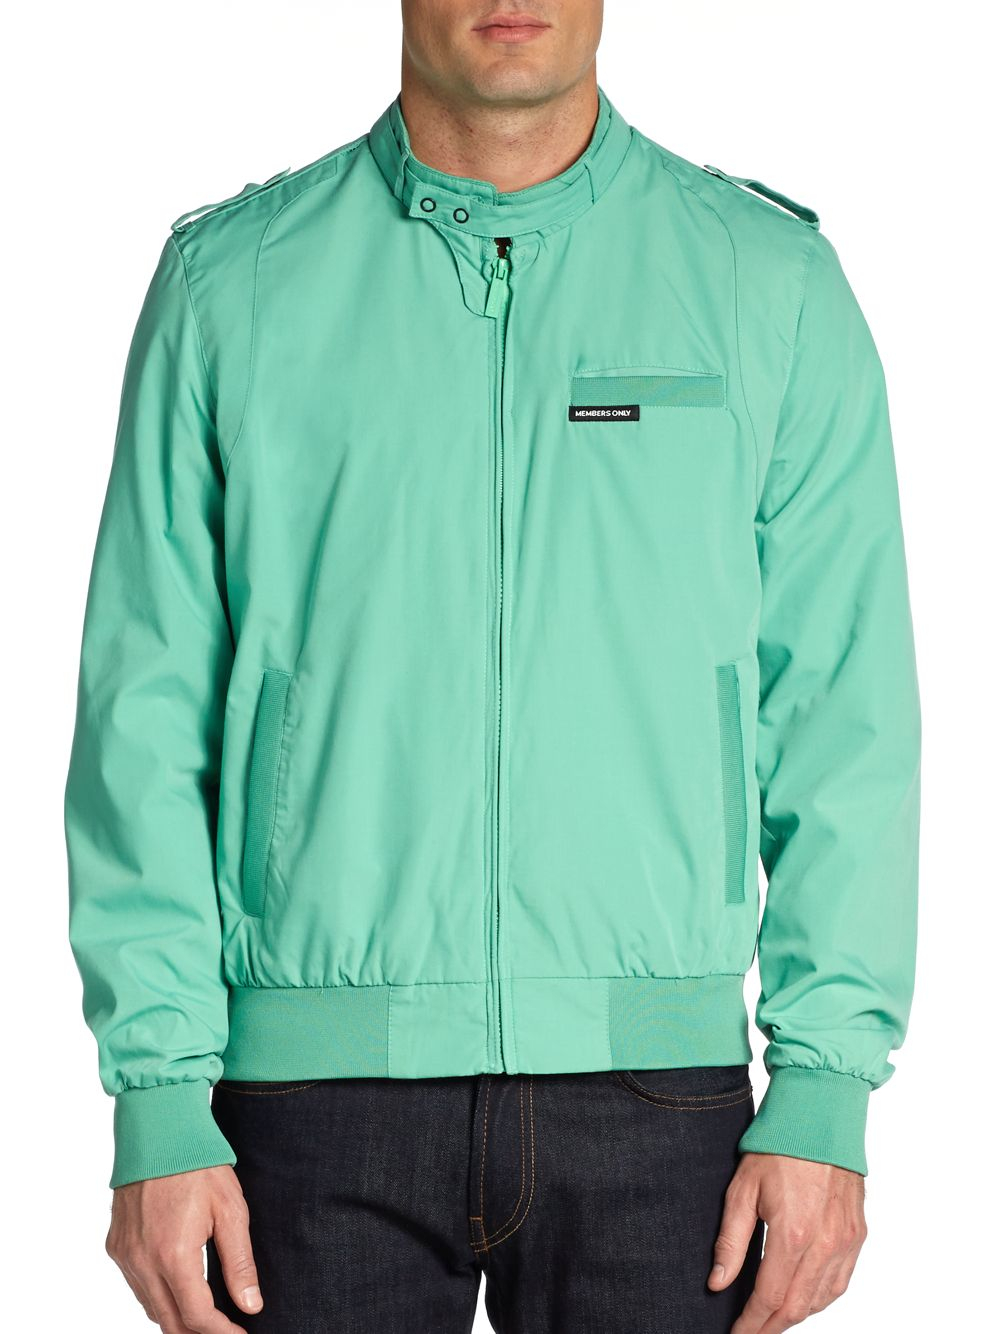 Lyst Members Only Knit Trim Jacket In Green For Men